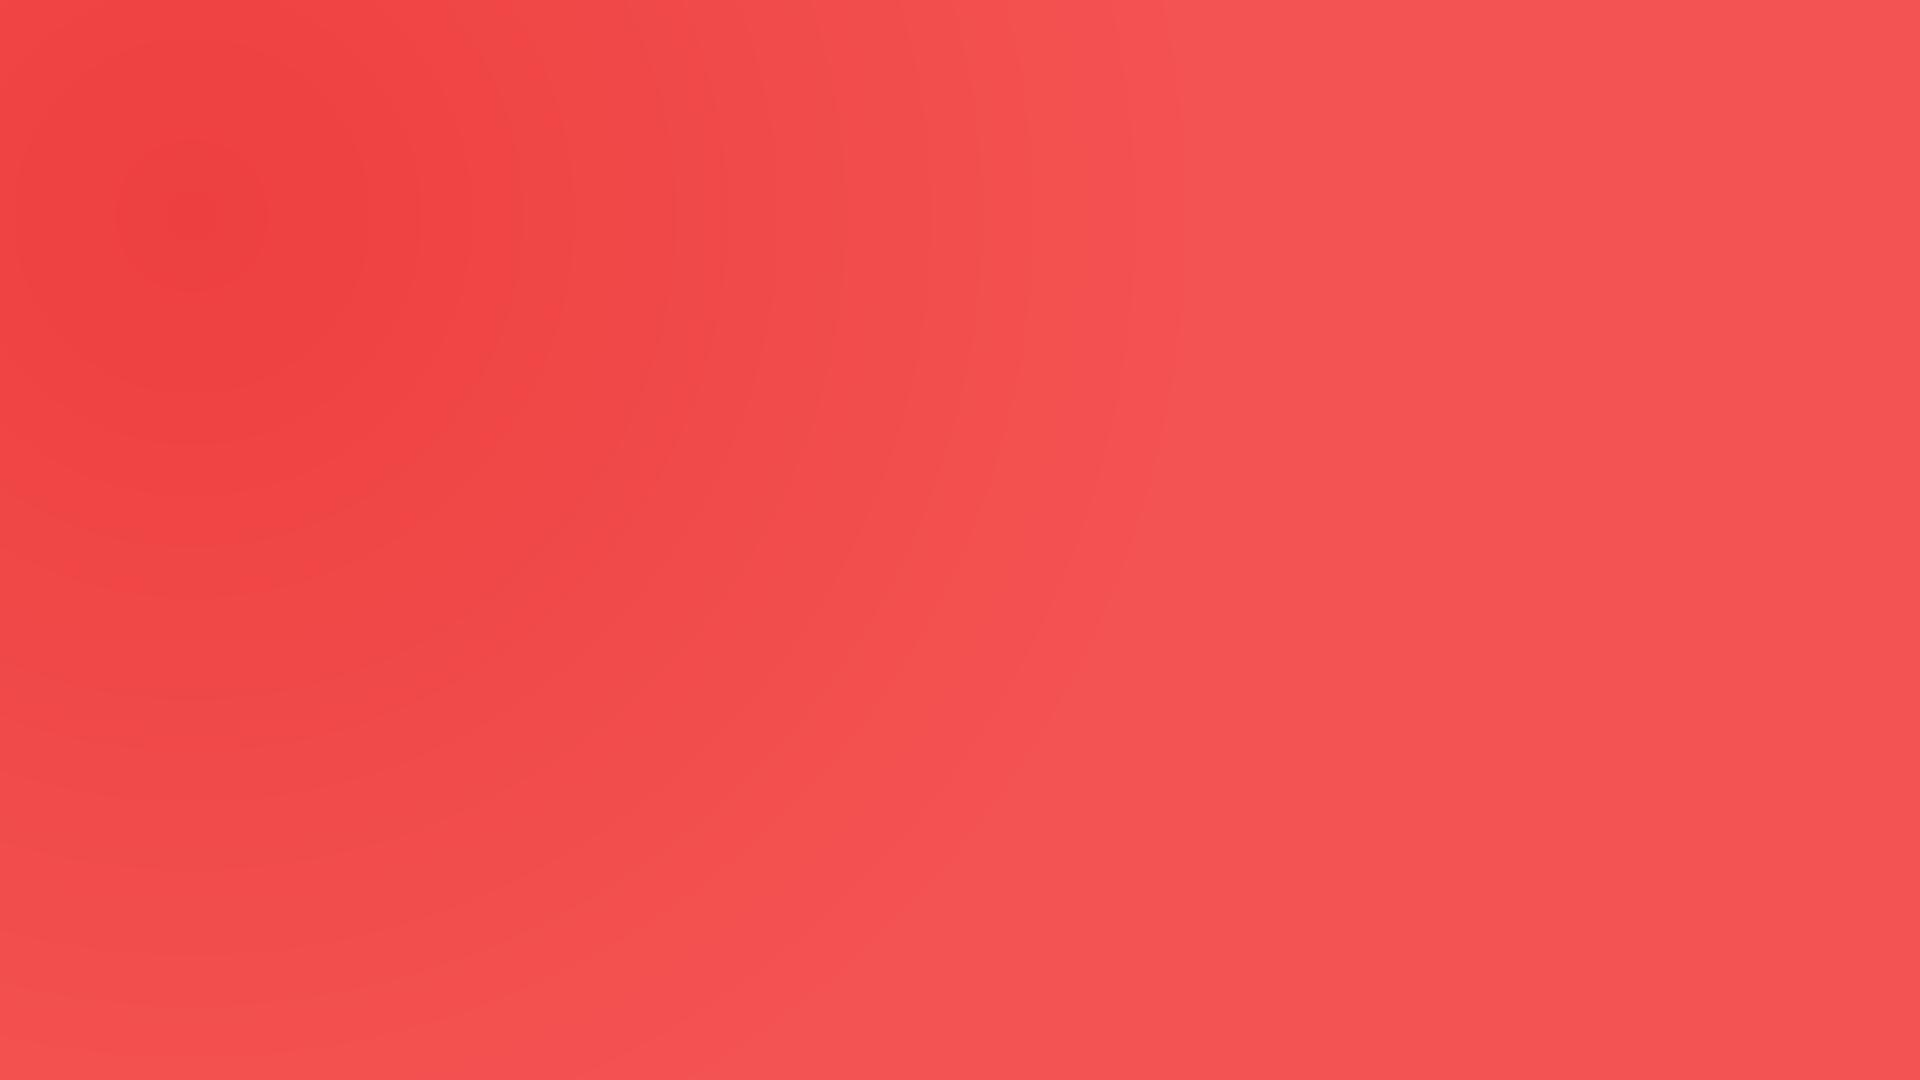 Red Style Gradient Gradient